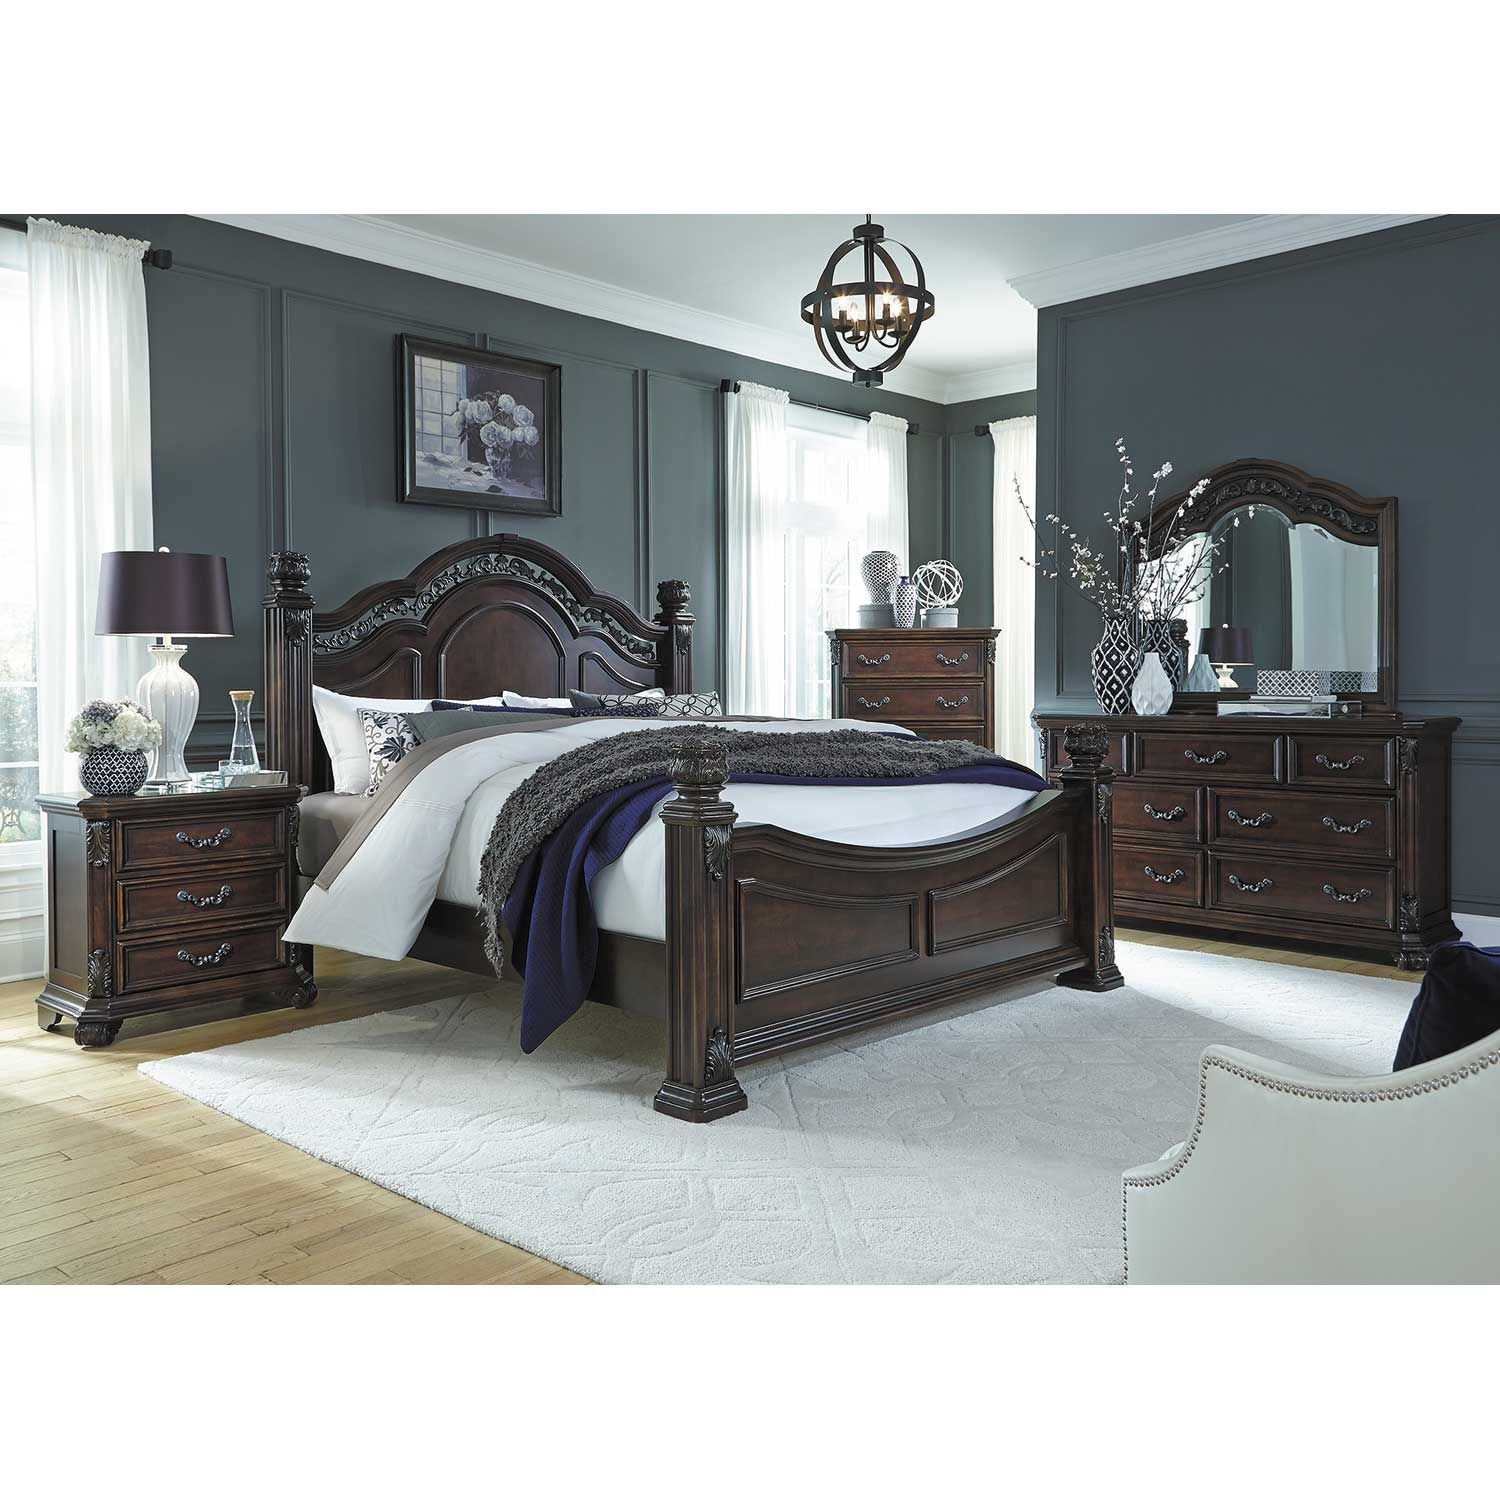 Picture of Messina Estate 5 Piece Set